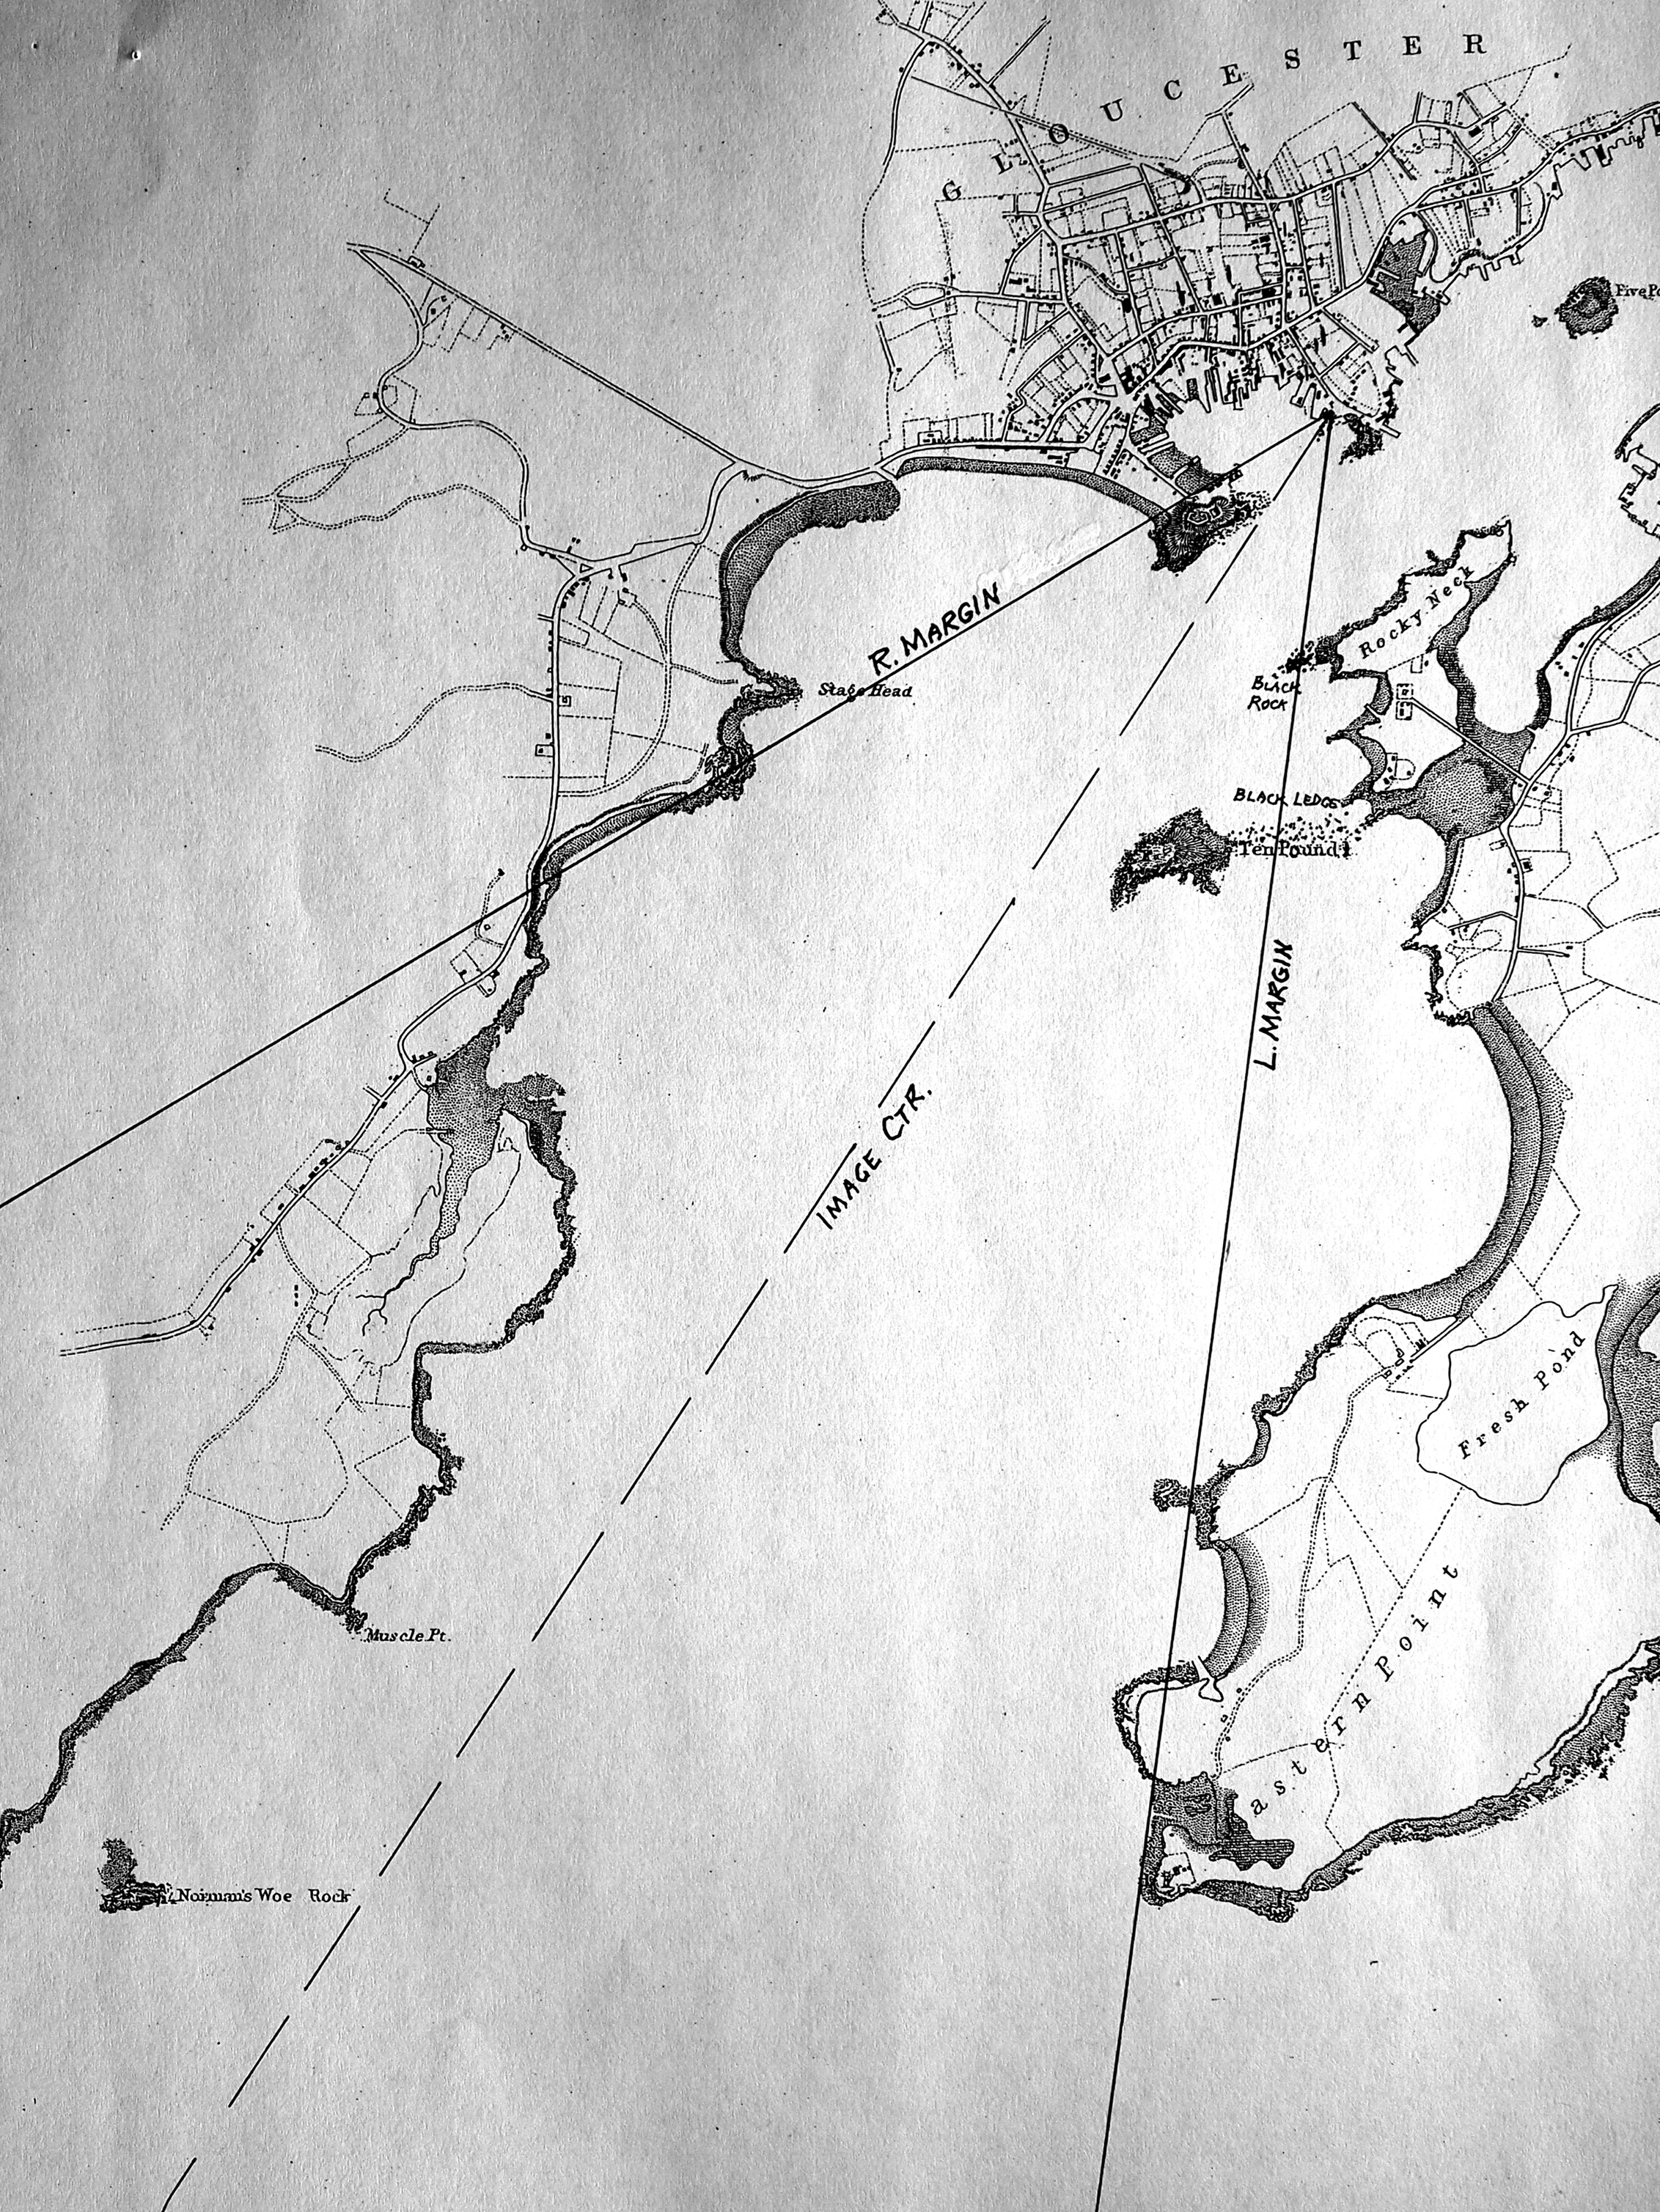 Fitz henry lane the old fort and ten pound island gloucester proposed nvjuhfo Choice Image